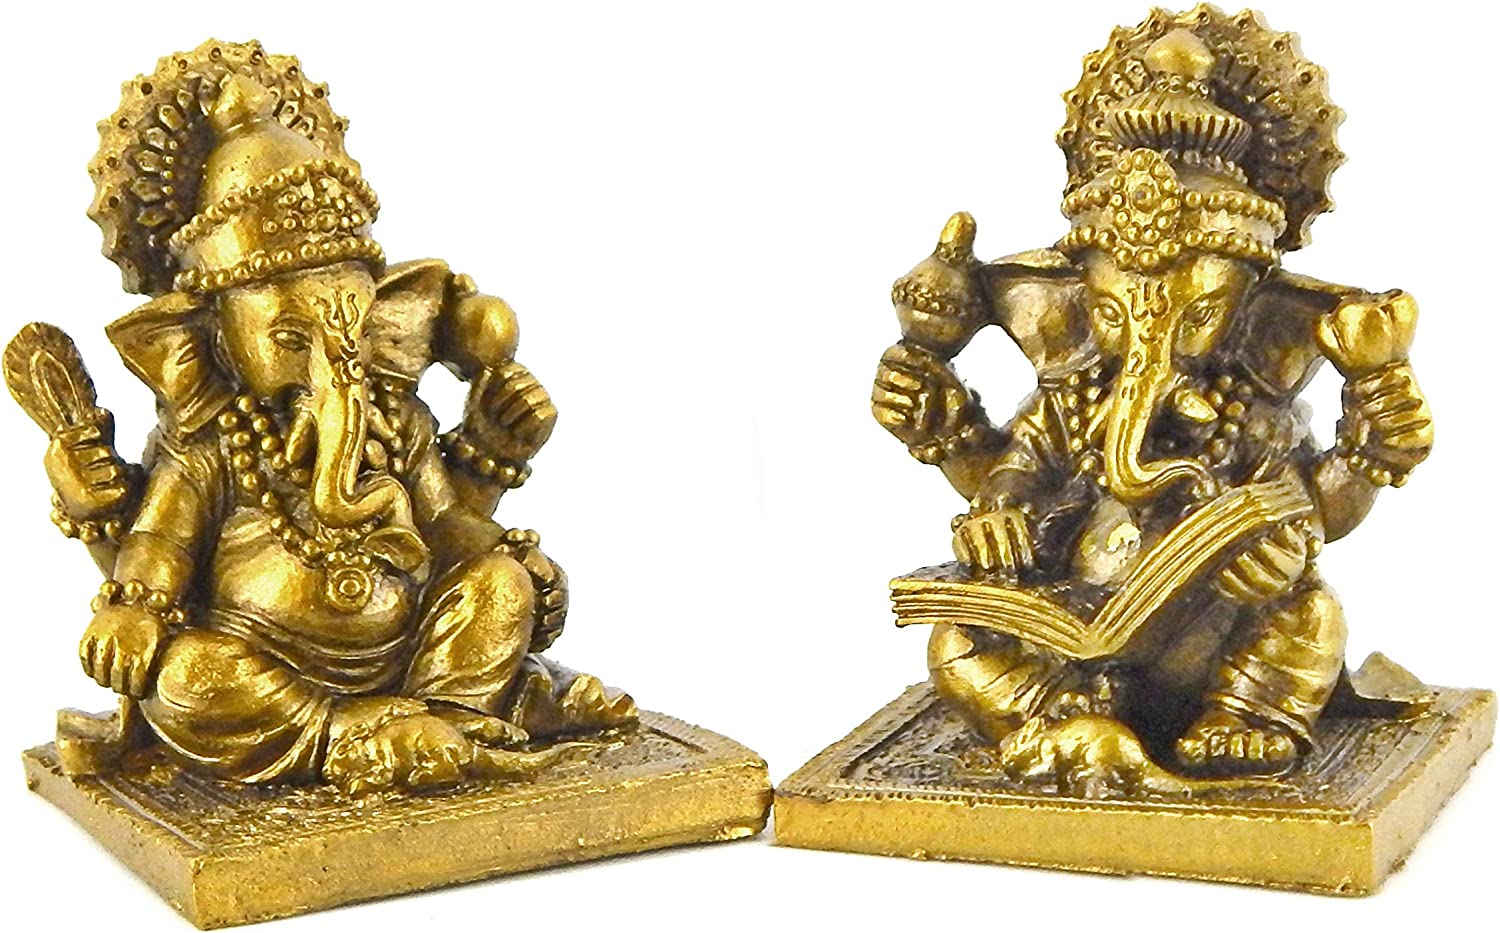 Bellaa 20971 Set of 2 Ganesha Statue Hindu God Lord Ganapati Idol Blessing Ganesh Sculpture Indian Elephant Buddha Diwali Pooja Ritual Home Decoration Good Luck Success Housewarming Gift 2.5 inch